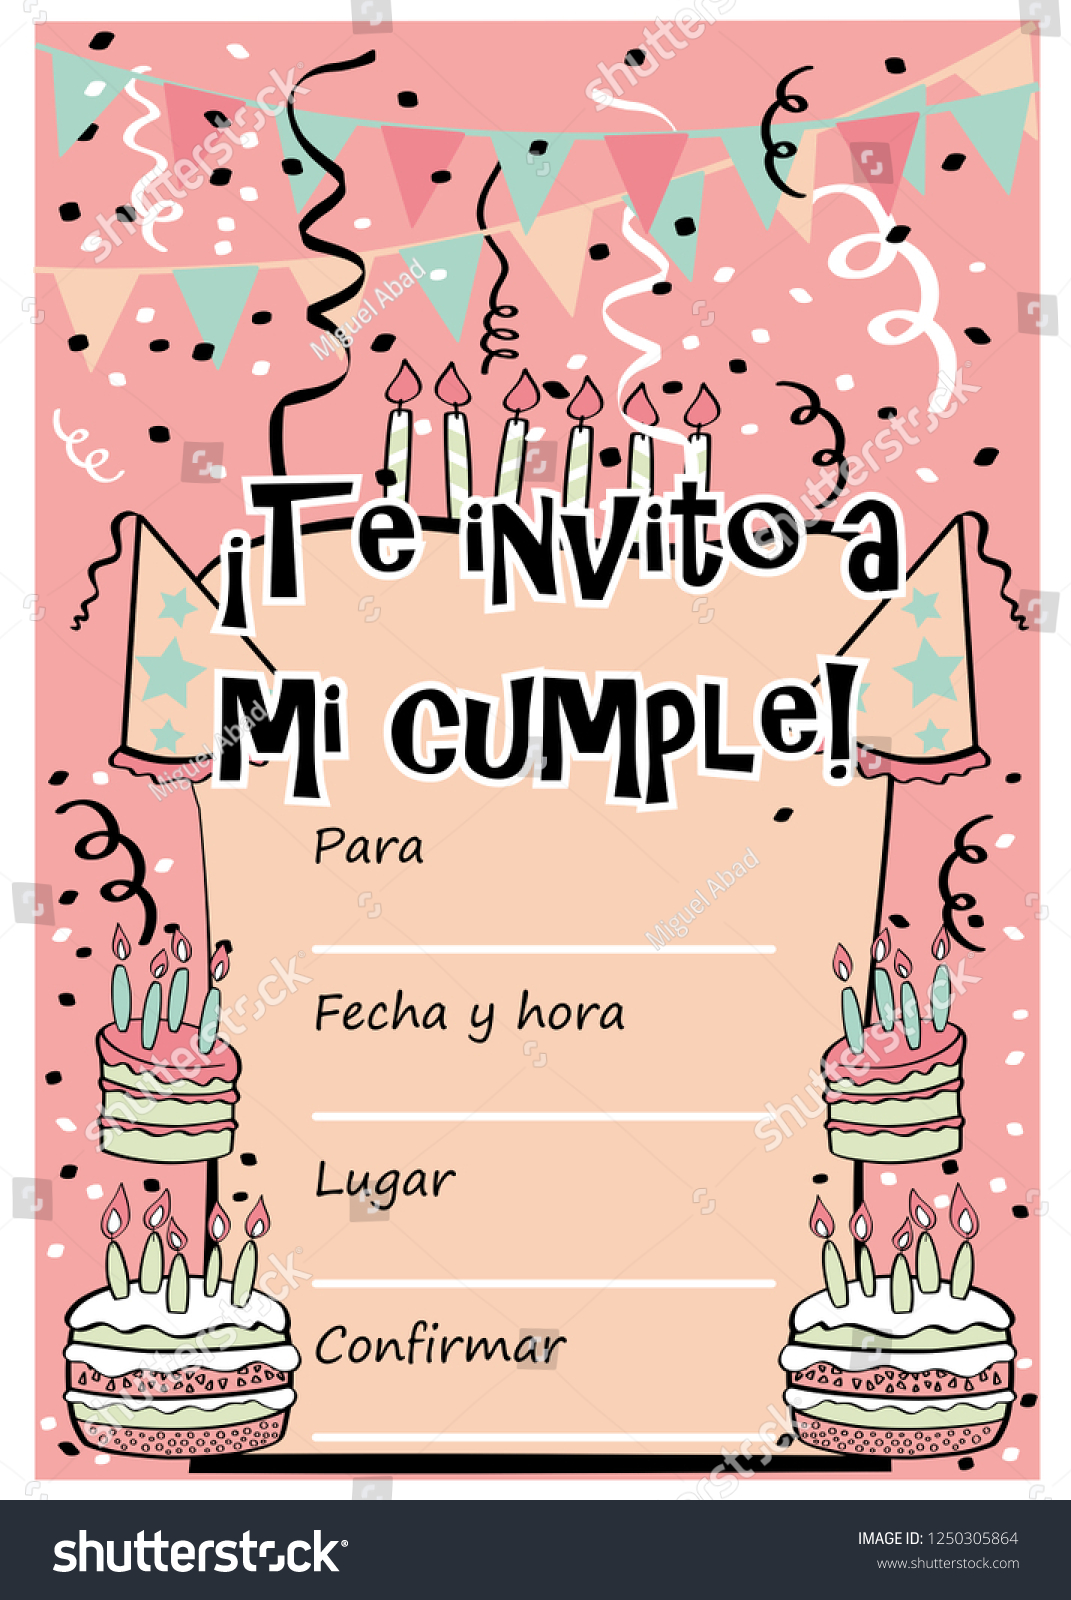 Kids Birthday Party Invitation Card With Sentence I Invite You To My Translated Spanish And Template For Fill Information